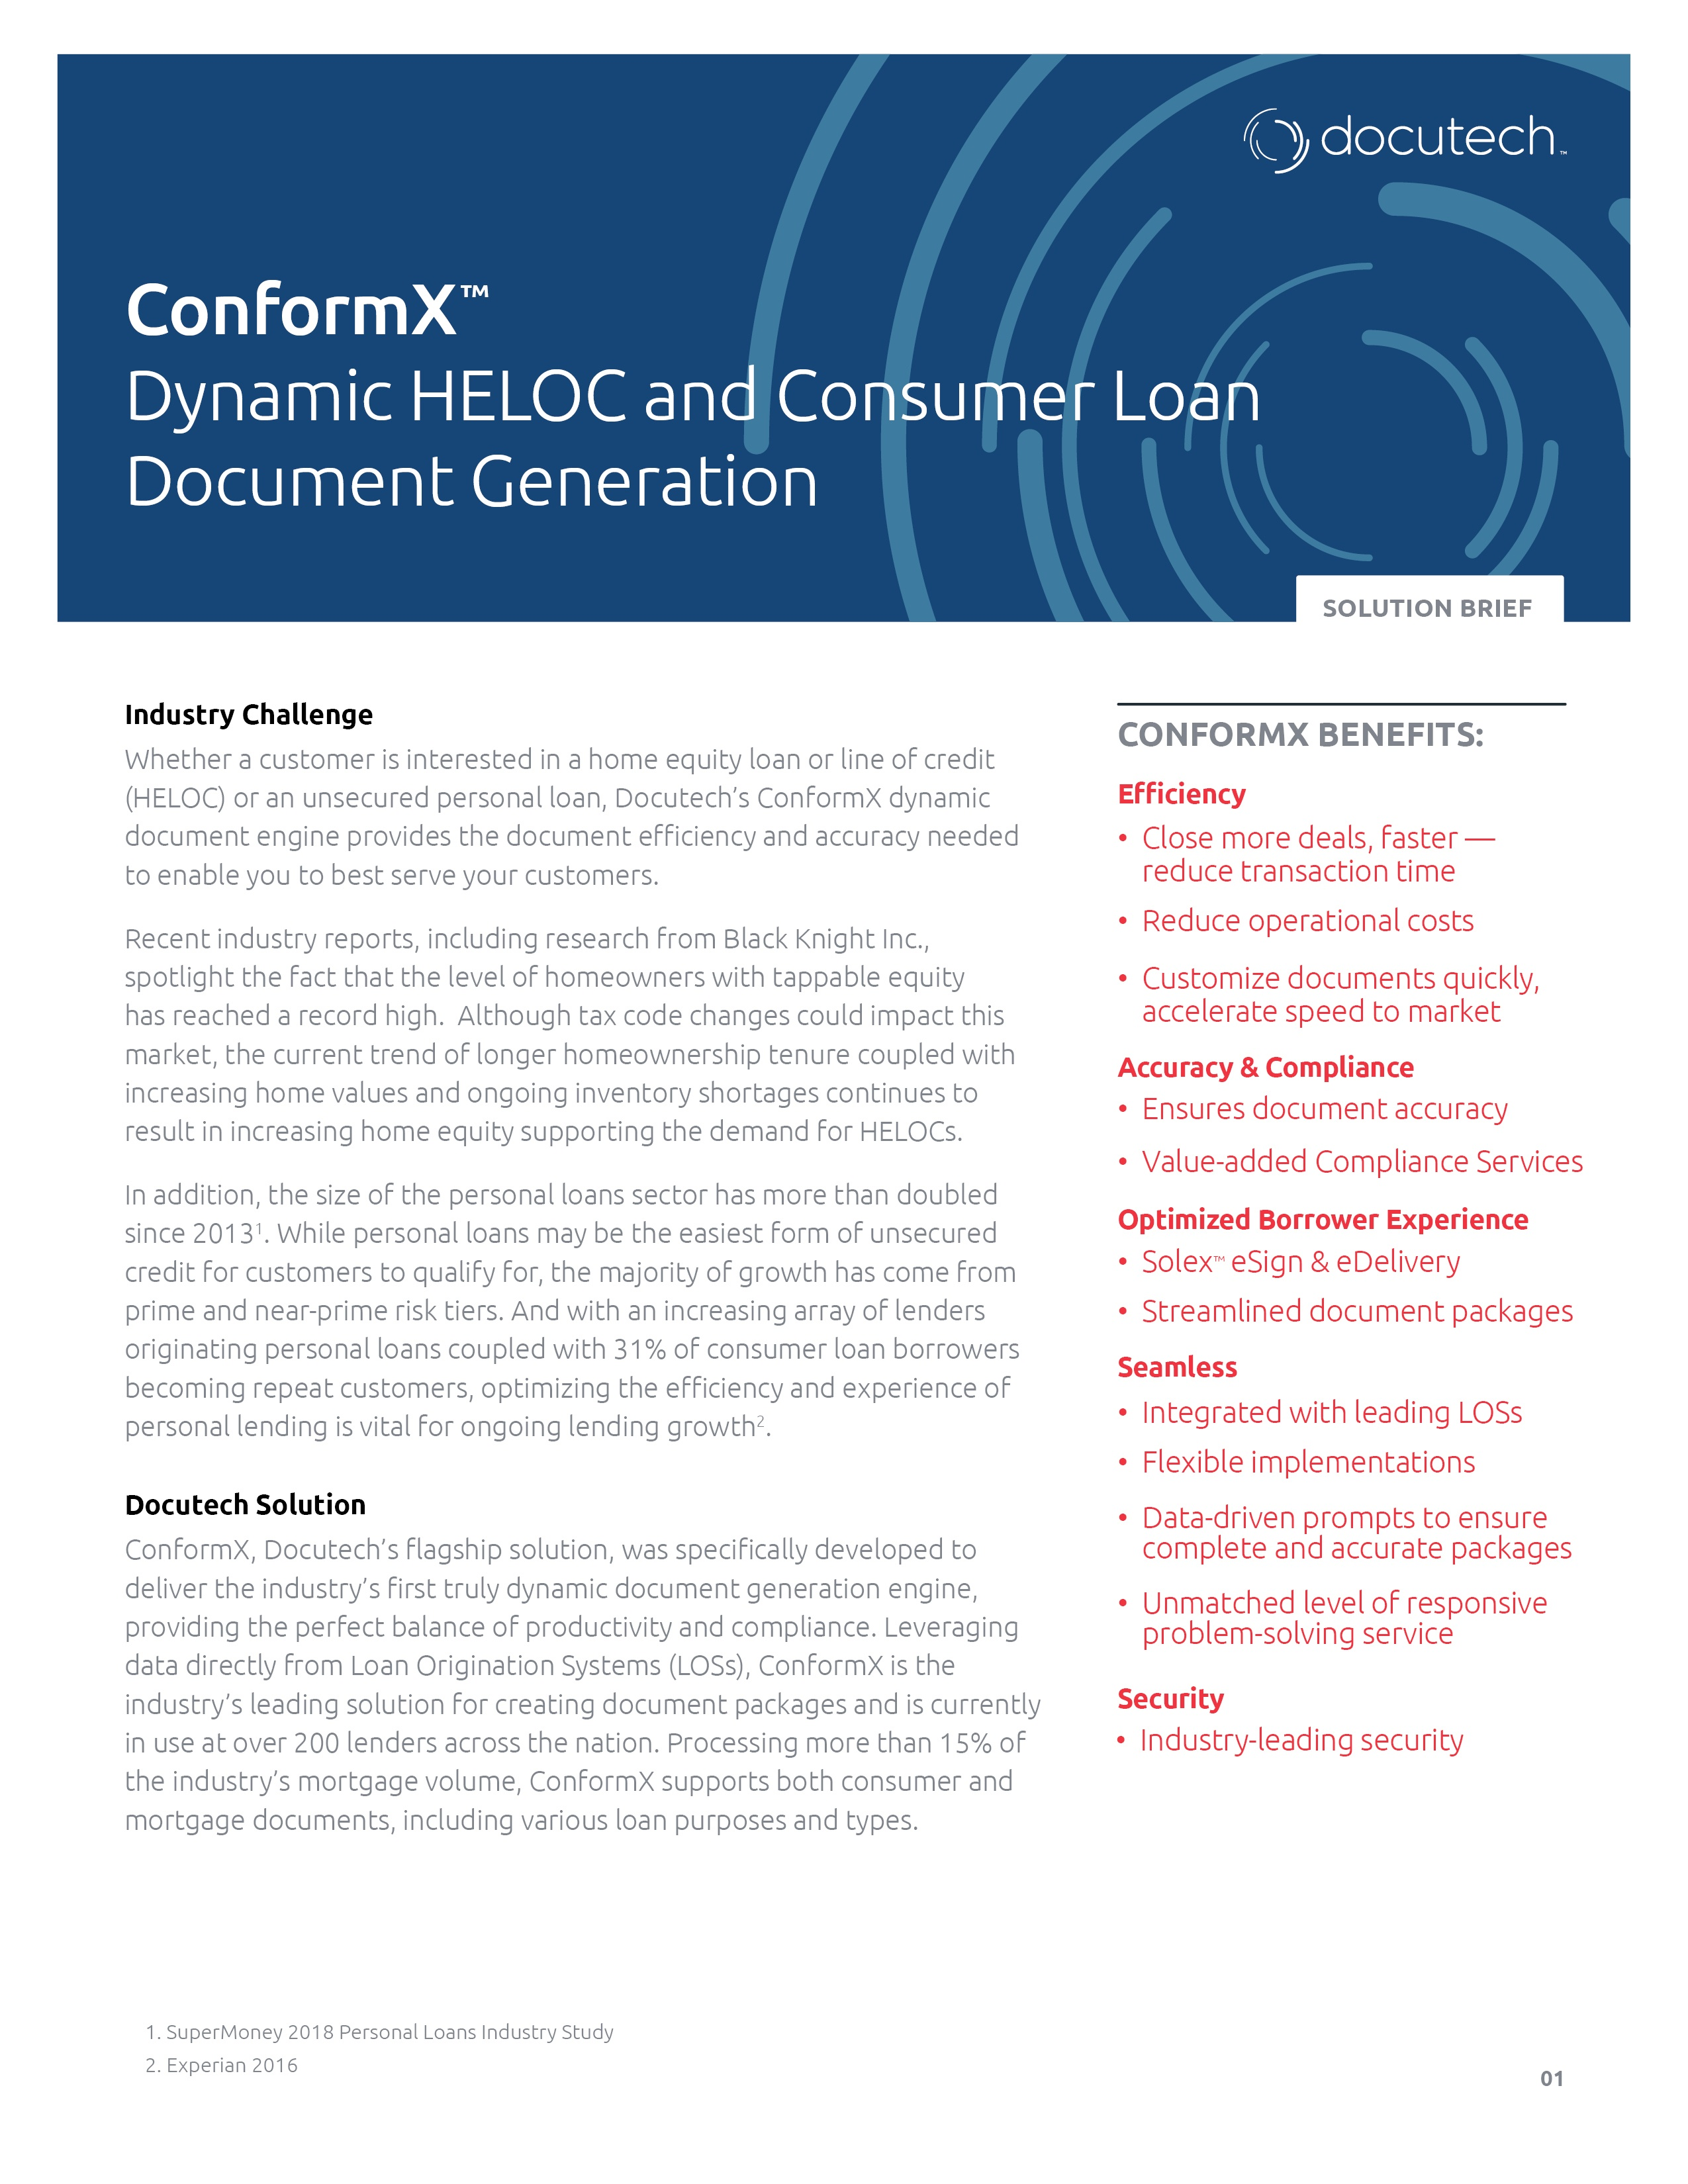 ConformX_HELOC_and_Consumer_Loan_Docmument_Generation.jpg